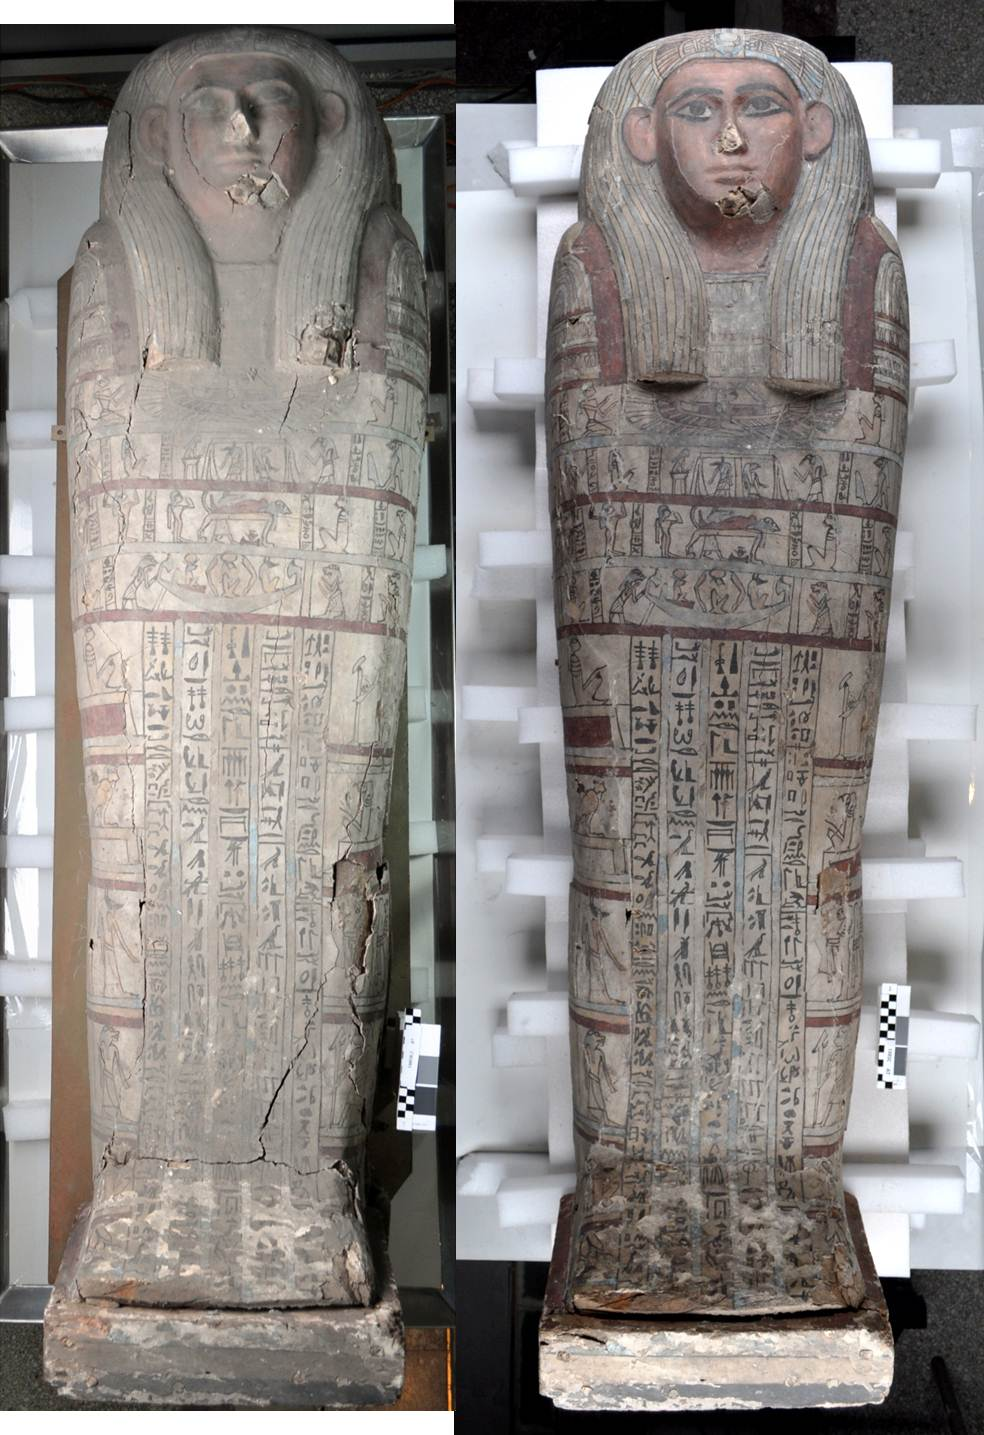 Tawahibre's coffin lid before (left) and aft